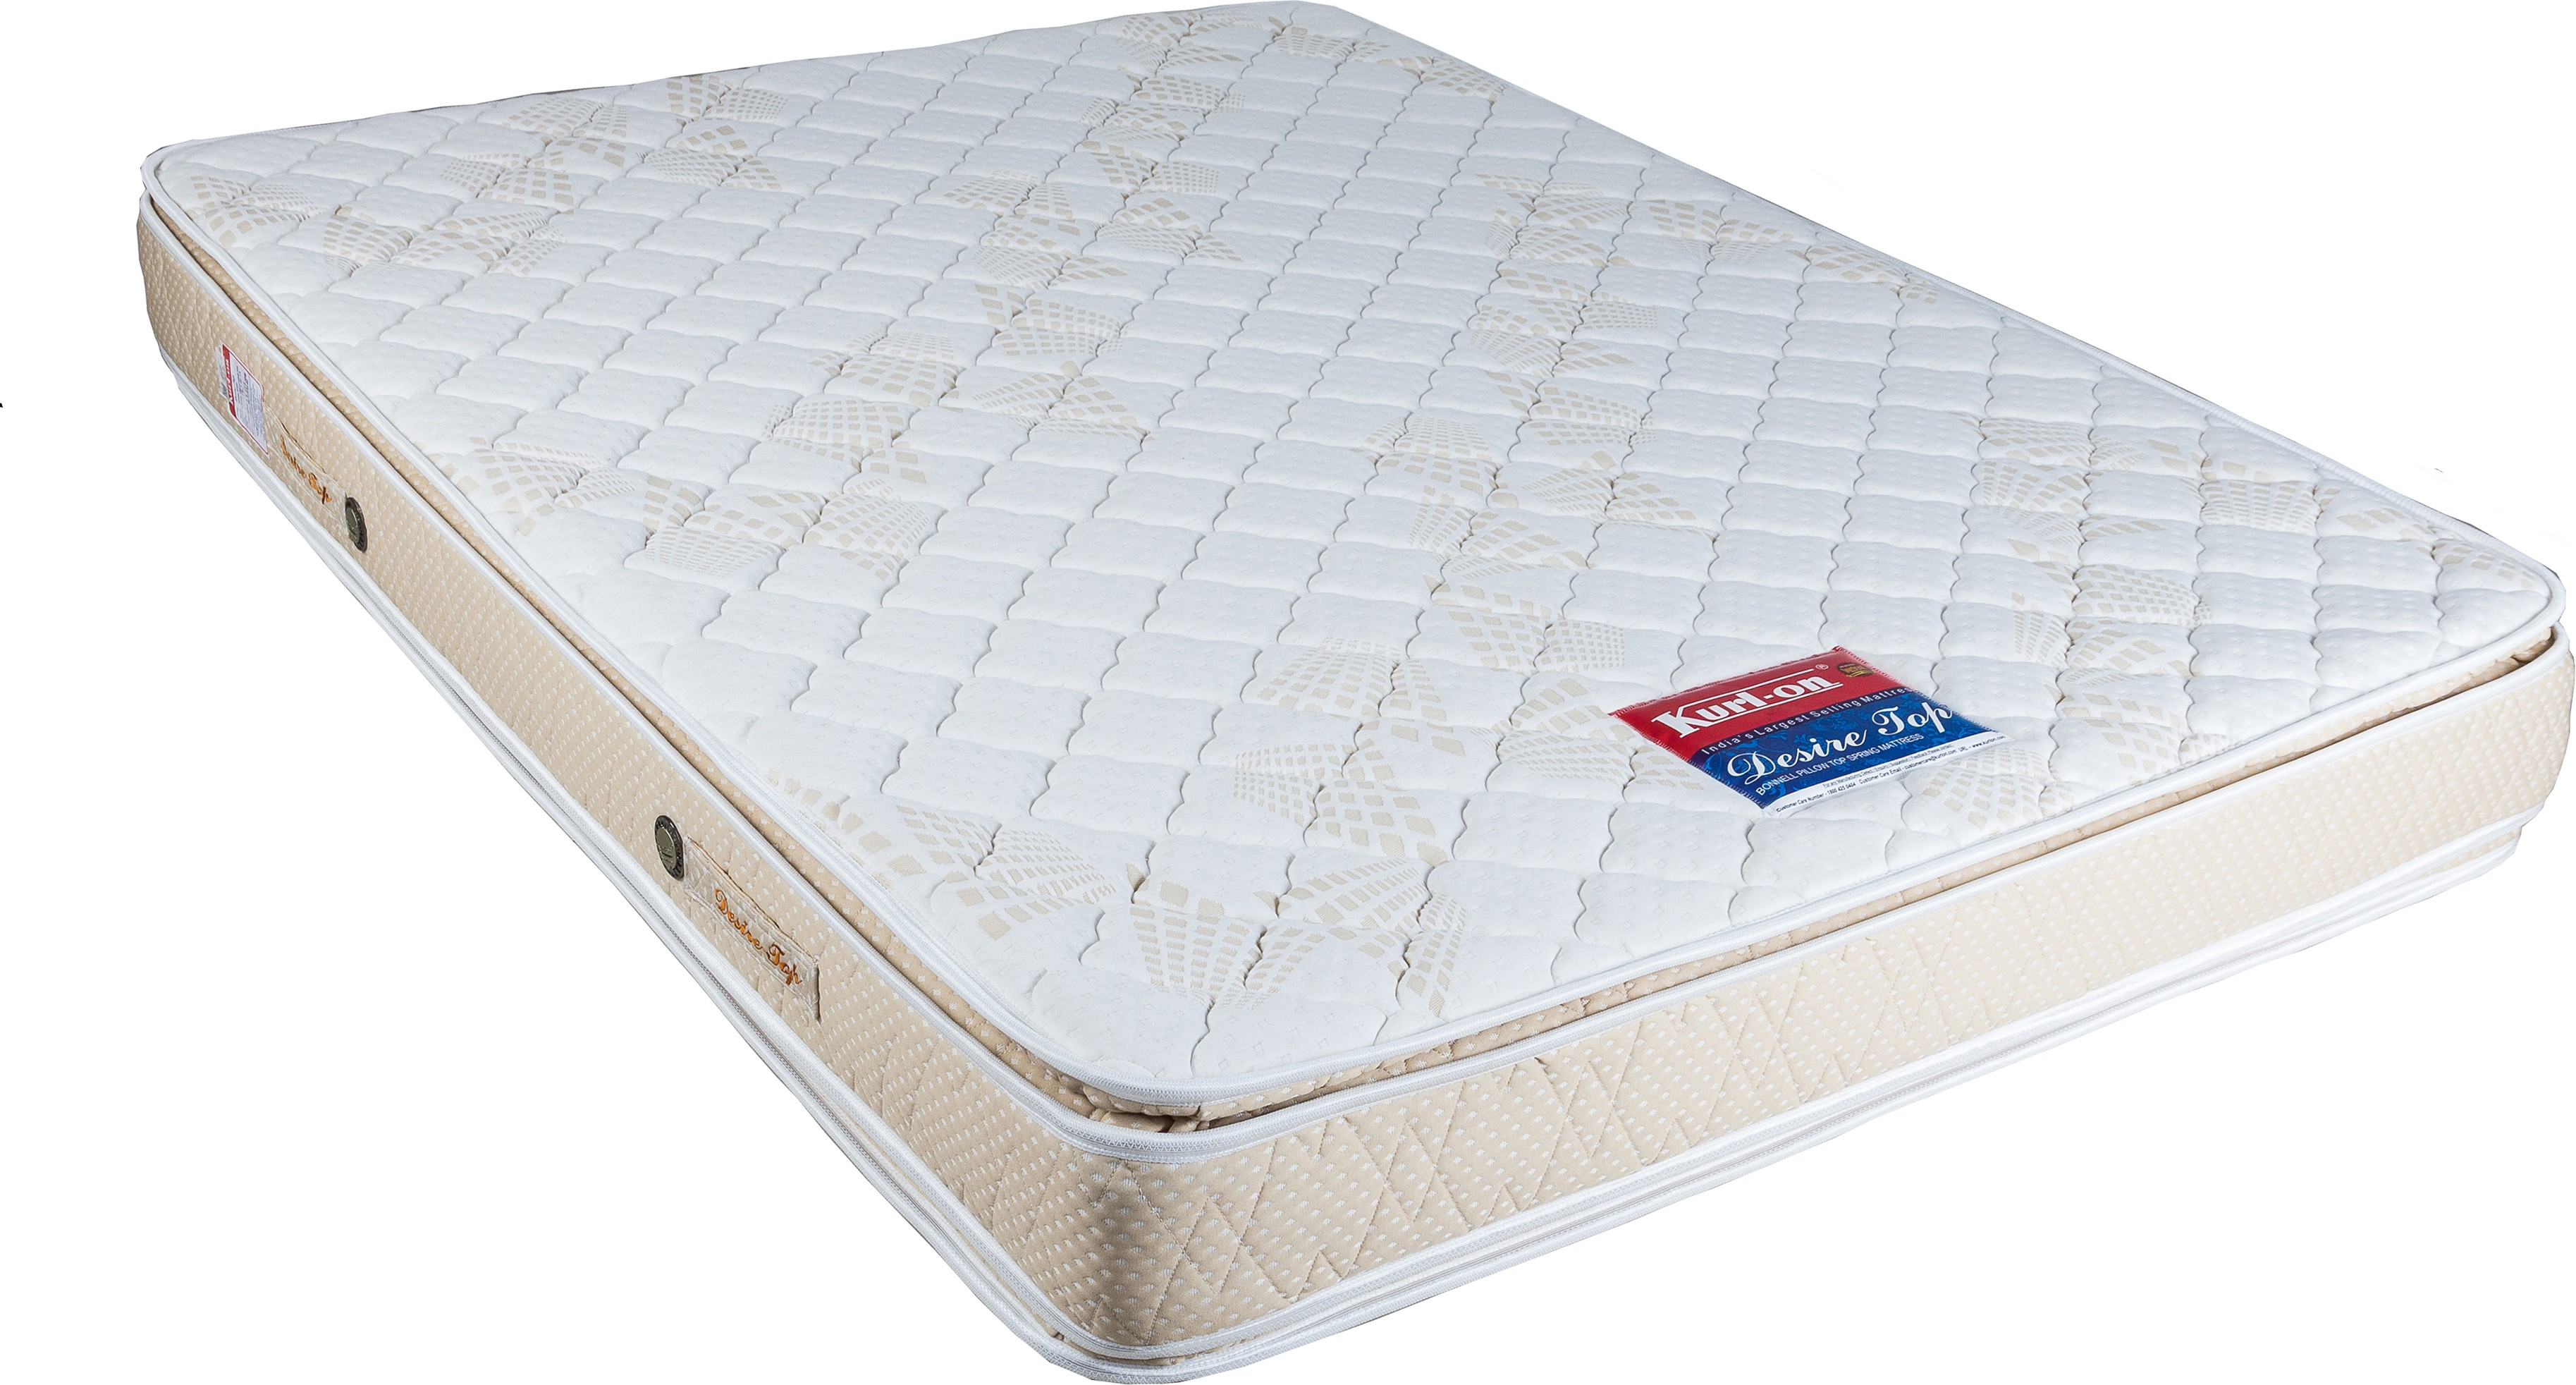 infused garden gel inch knight foam overstock size mattress memory home white queen free aloe product christopher today by shipping